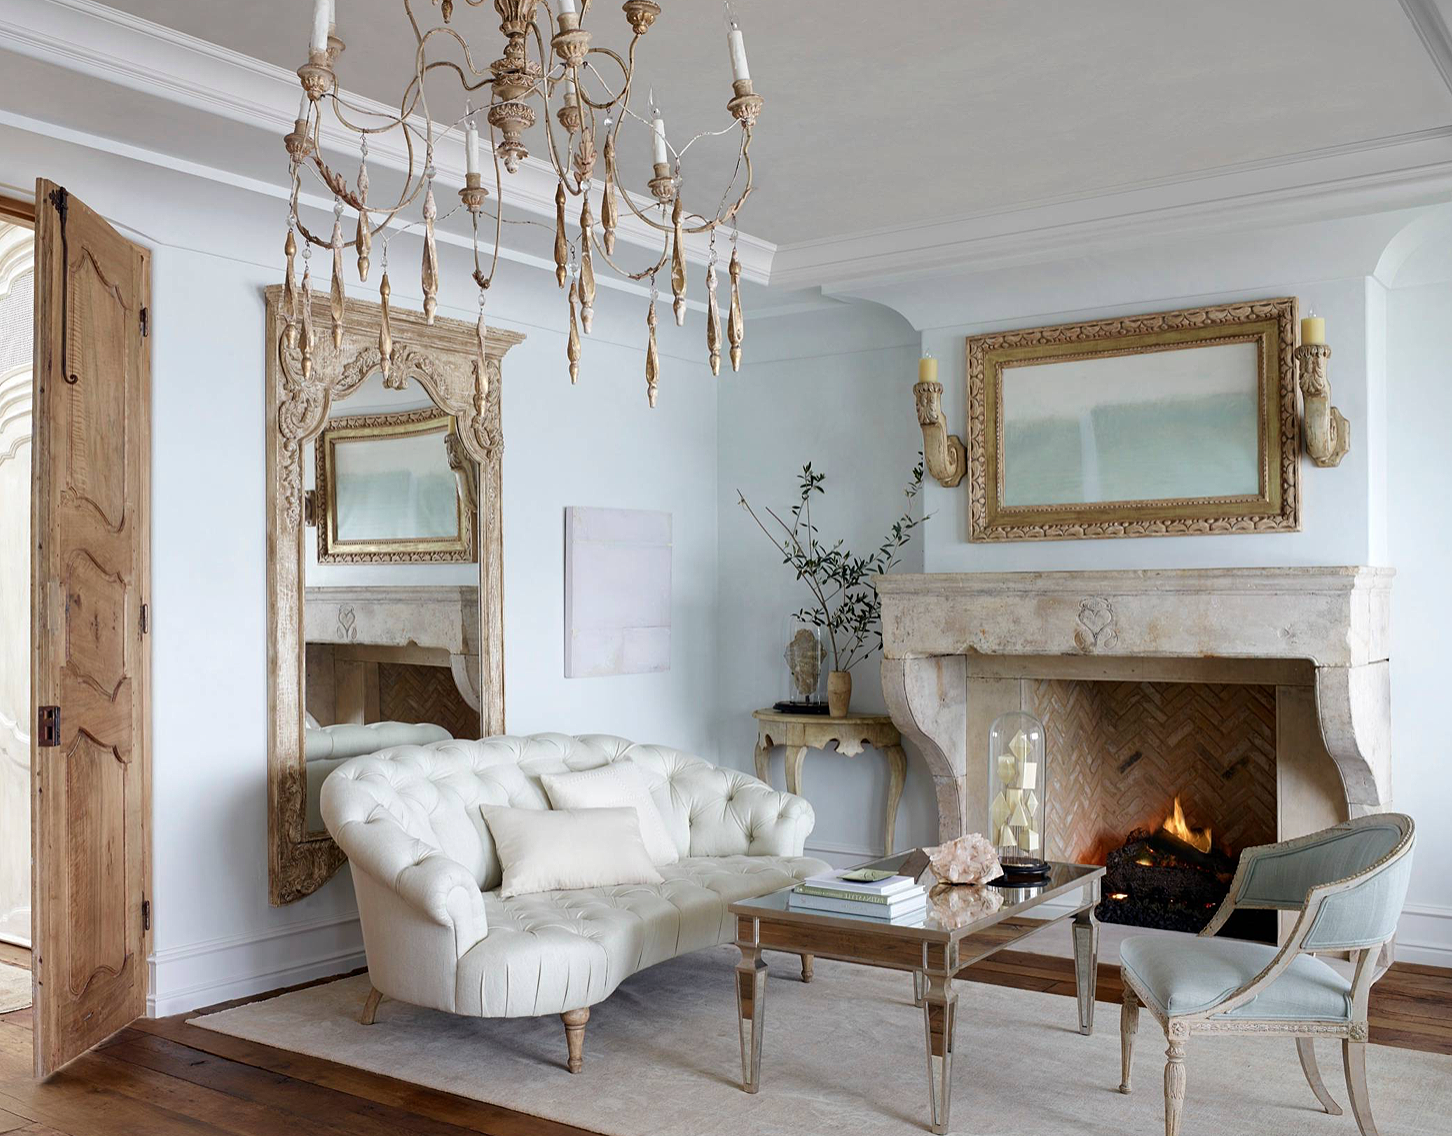 Majestic French Country Style Beige Rustic Living Room Decor With Tufted Sofa Living Room Decor Rustic Country Style Living Room Country Style Bedroom #tufted #sofa #living #room #ideas